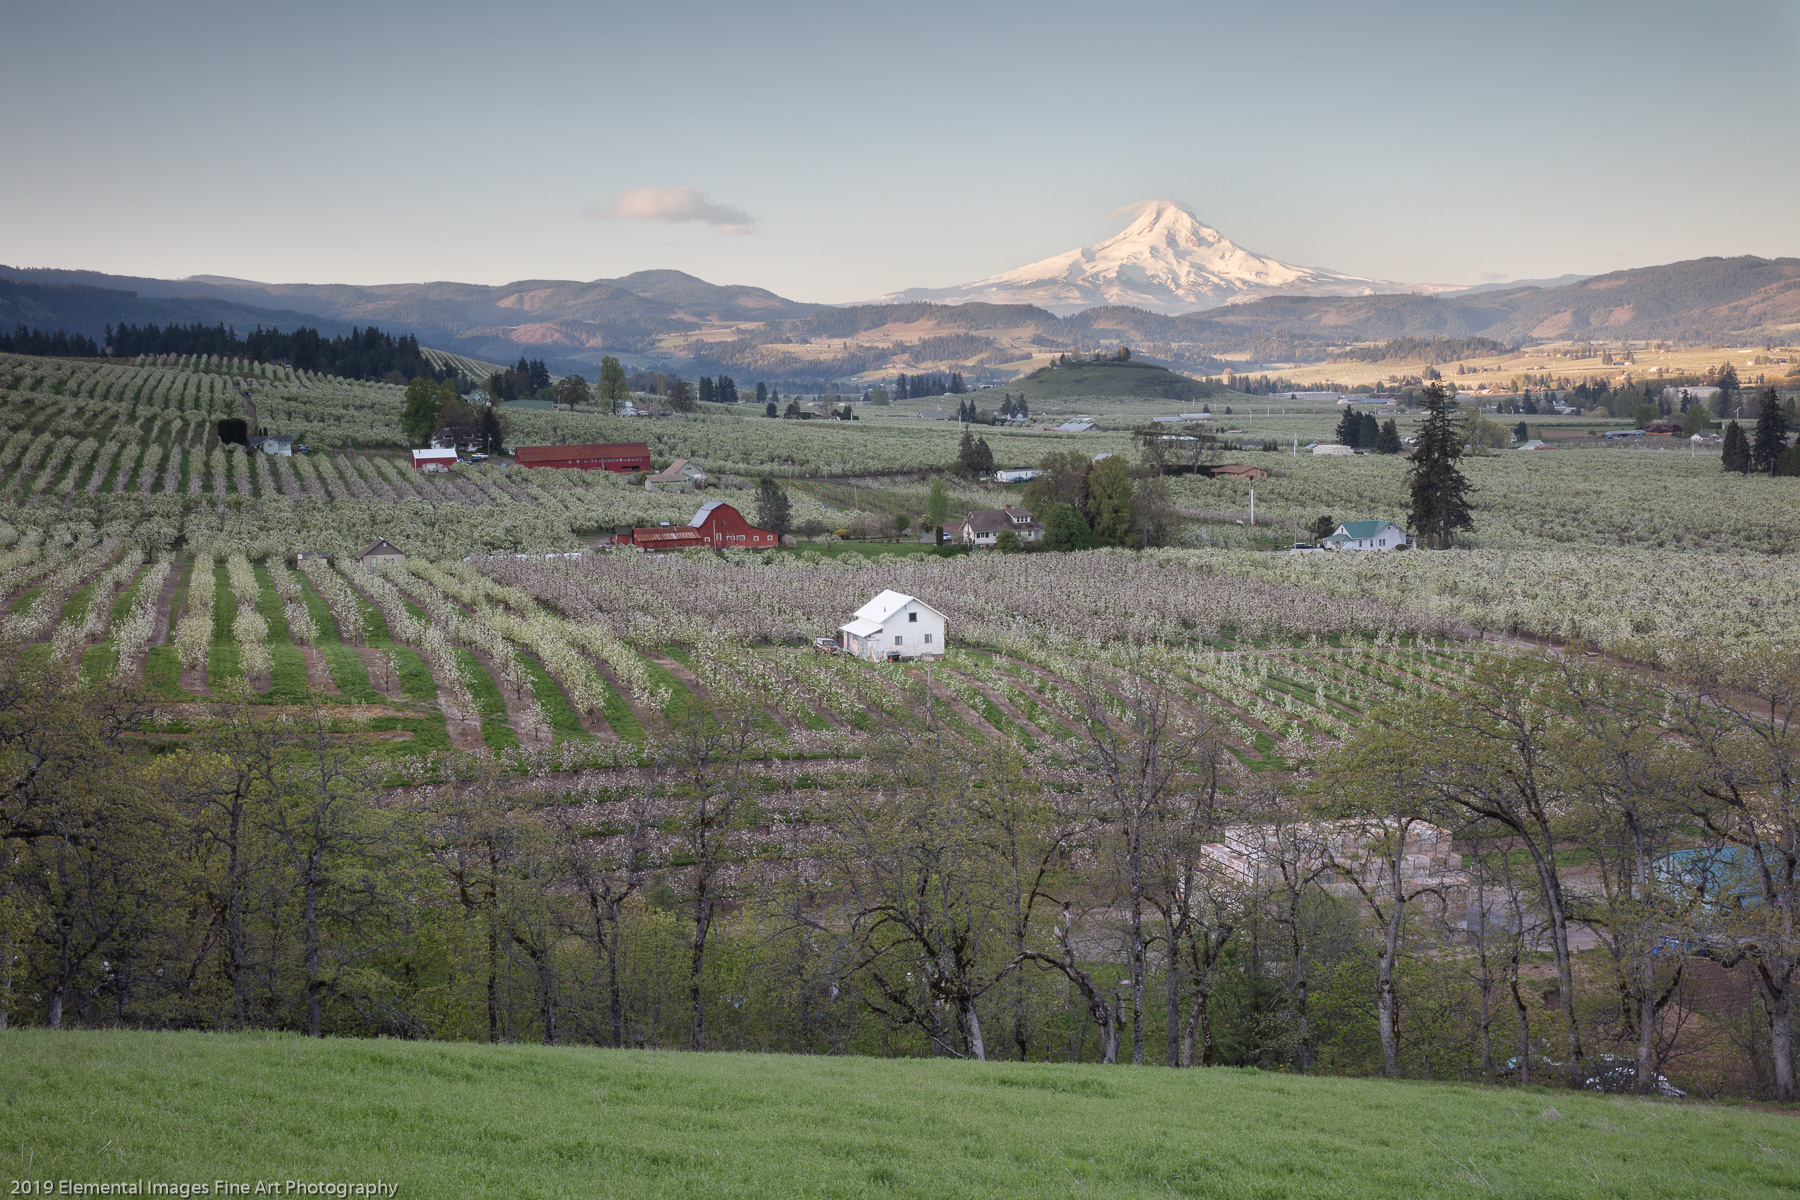 Mt. Hood view | Hood River | OR | USA - © 2019 Elemental Images Fine Art Photography - All Rights Reserved Worldwide